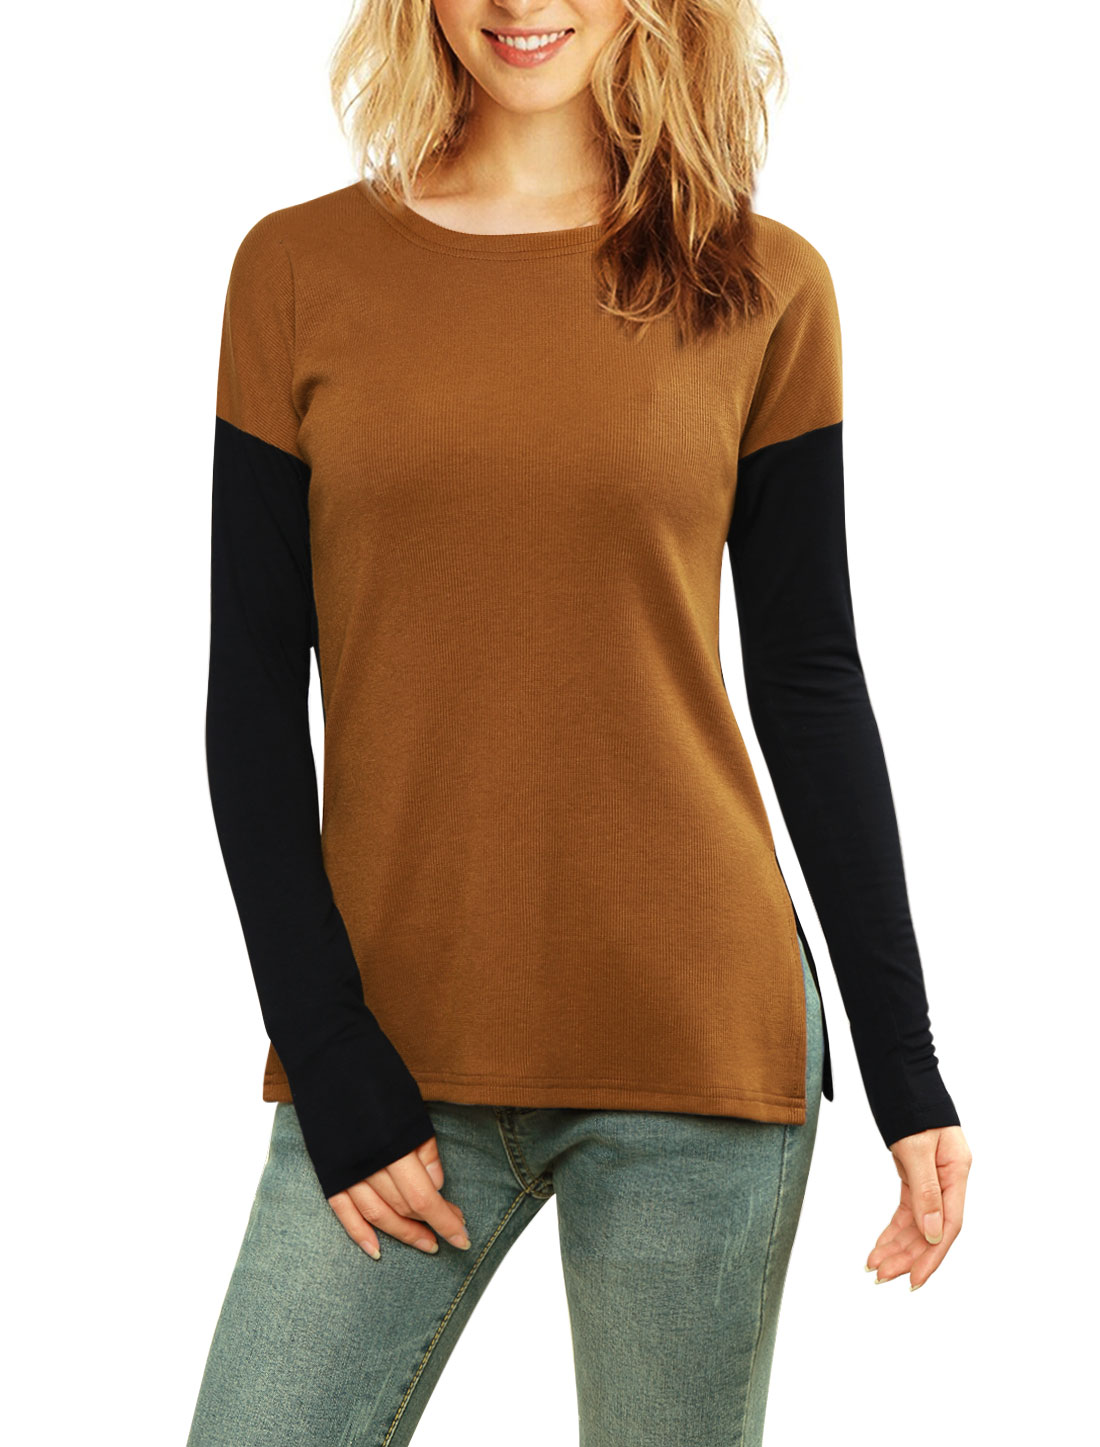 Women Color Block Side-Slit Paneled Slim Fit Ribbed Top Brown XS